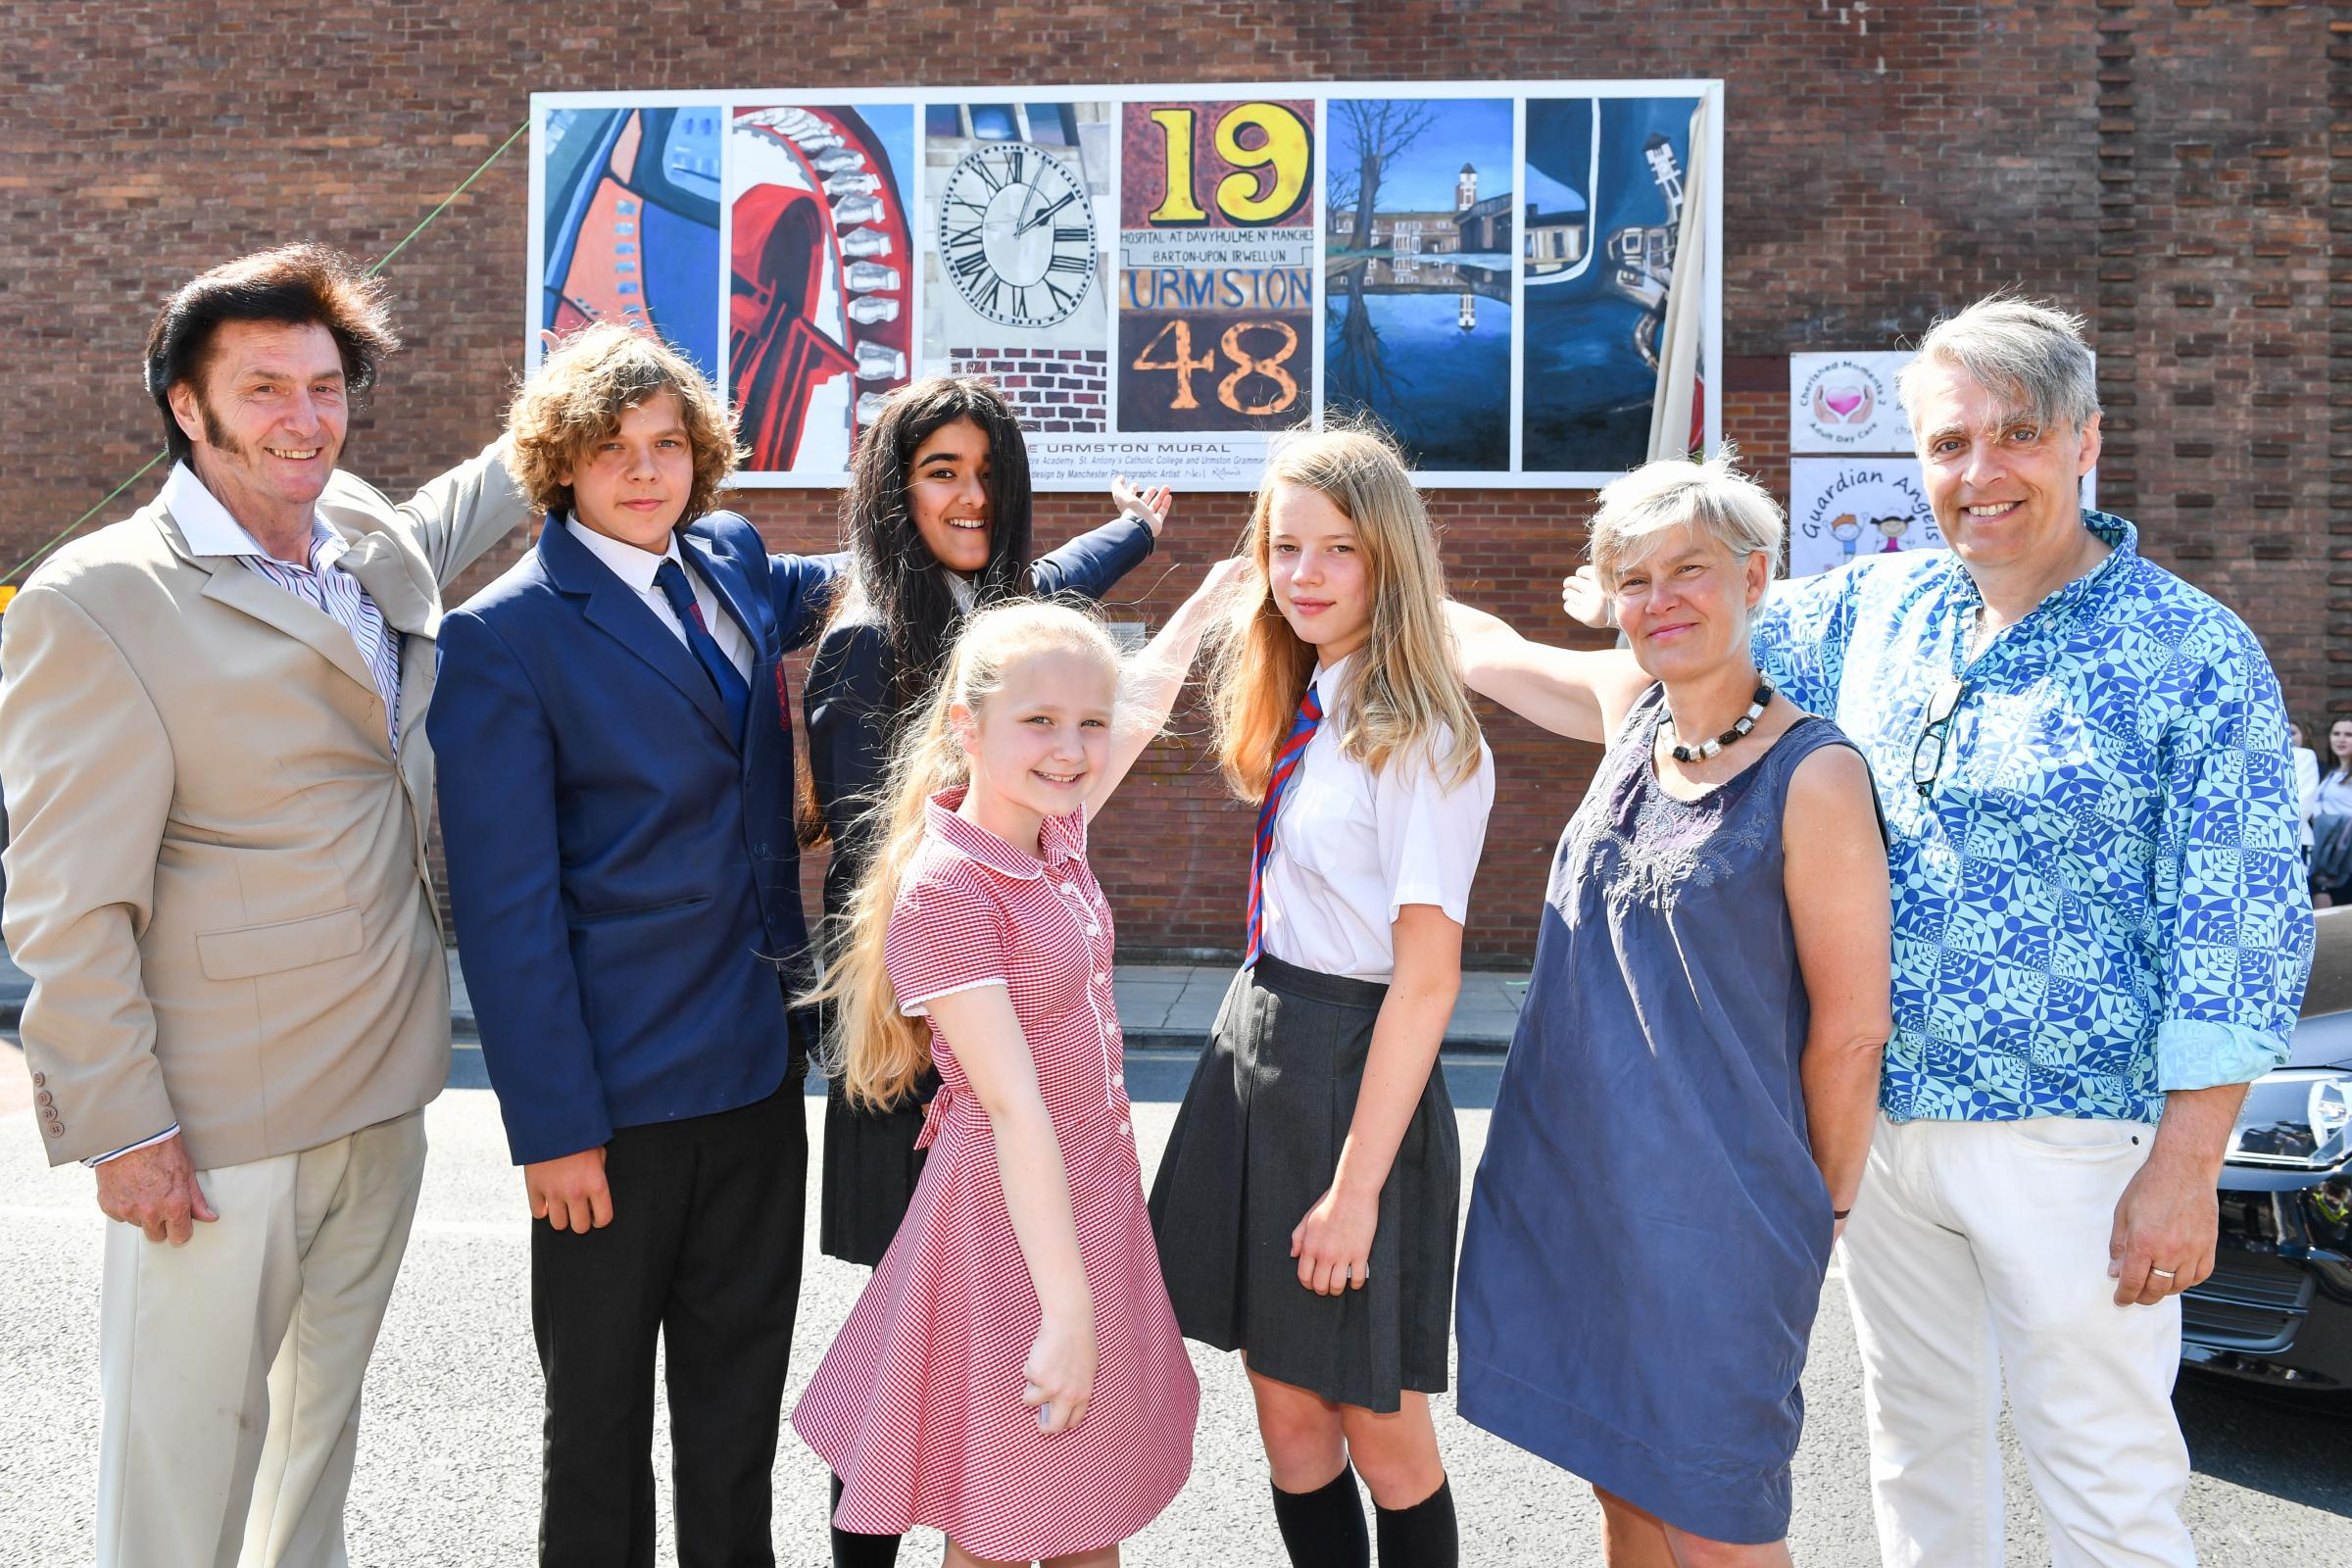 Urmston in Bloom: Kevin Murphy (left) and pupils from local schools and colleges joined Kate Green, MP for Stretford & Urmston, and Neil Roland (right) at the unveiling of the Urmston Mural.